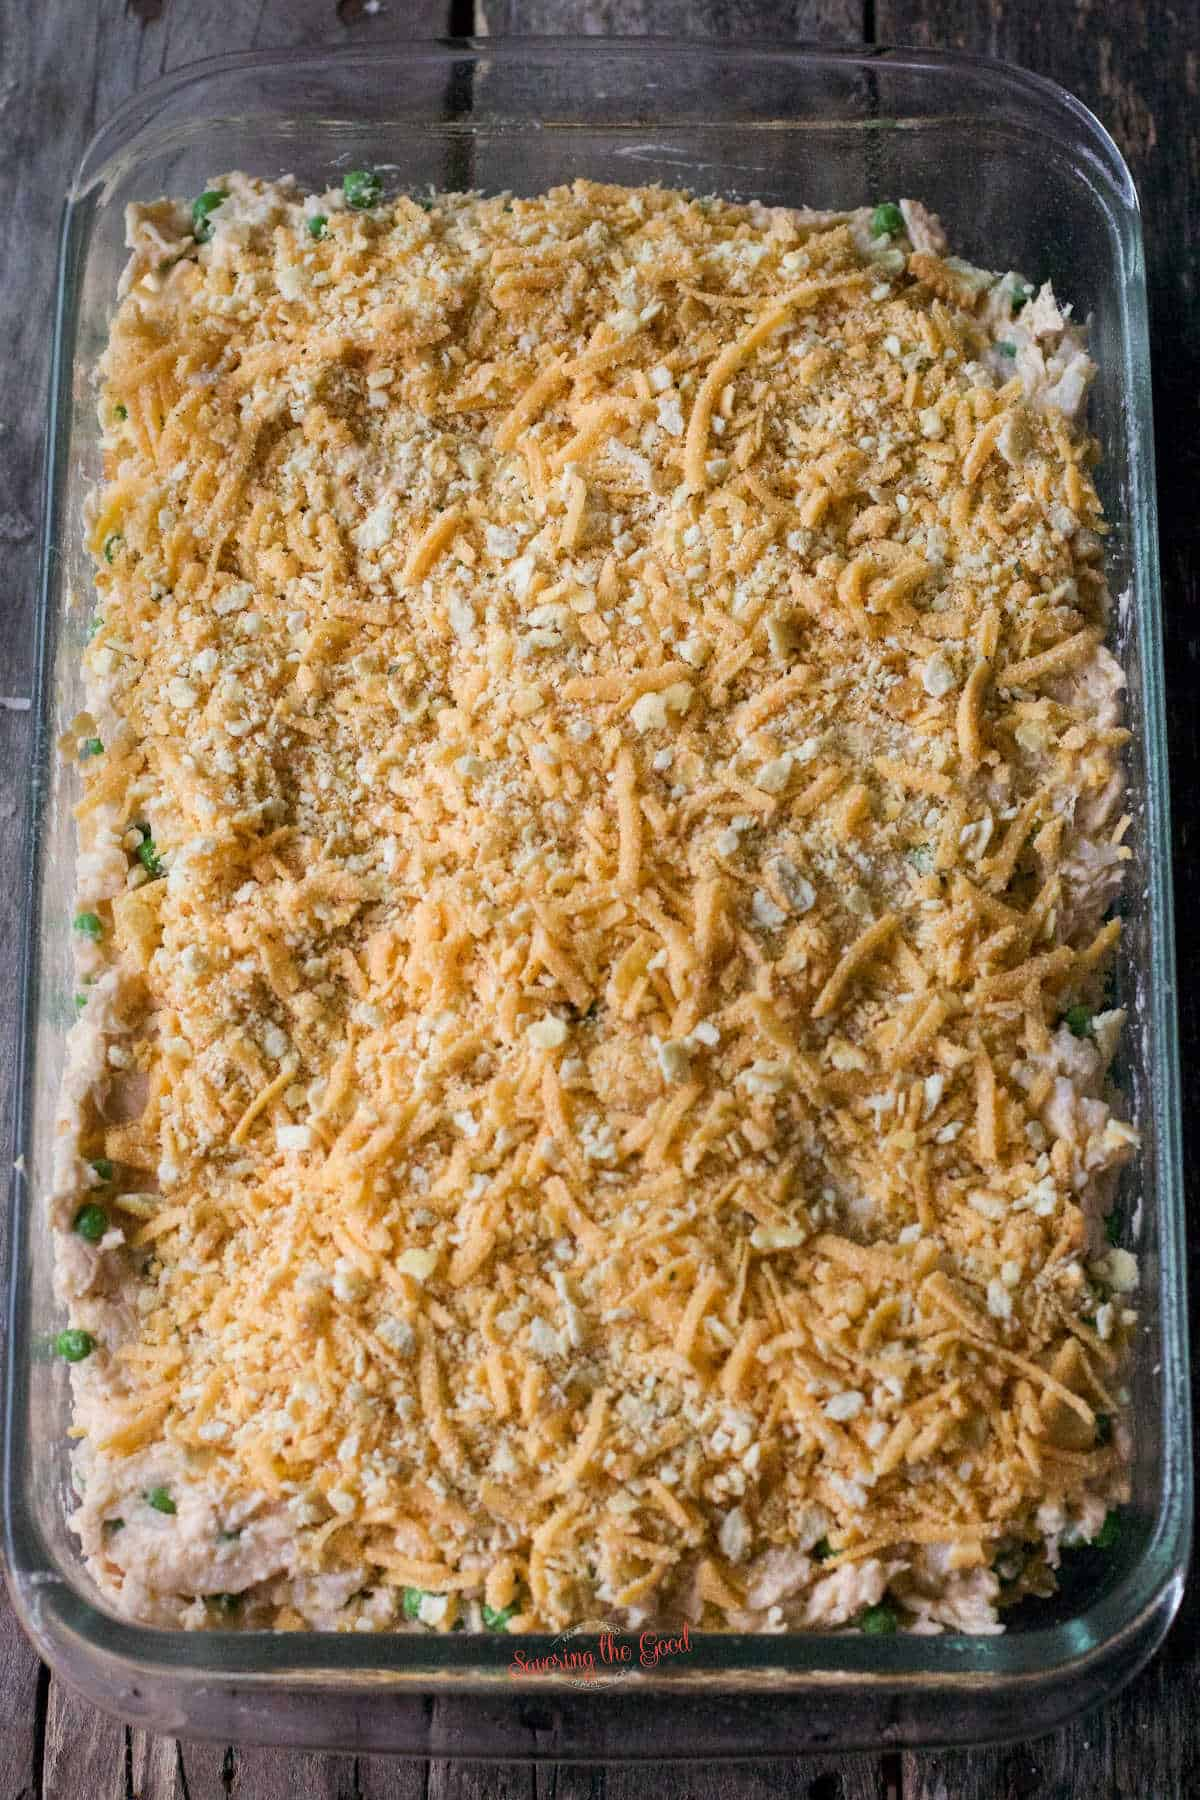 unbaked cheesy chicken casserole in a glass dish